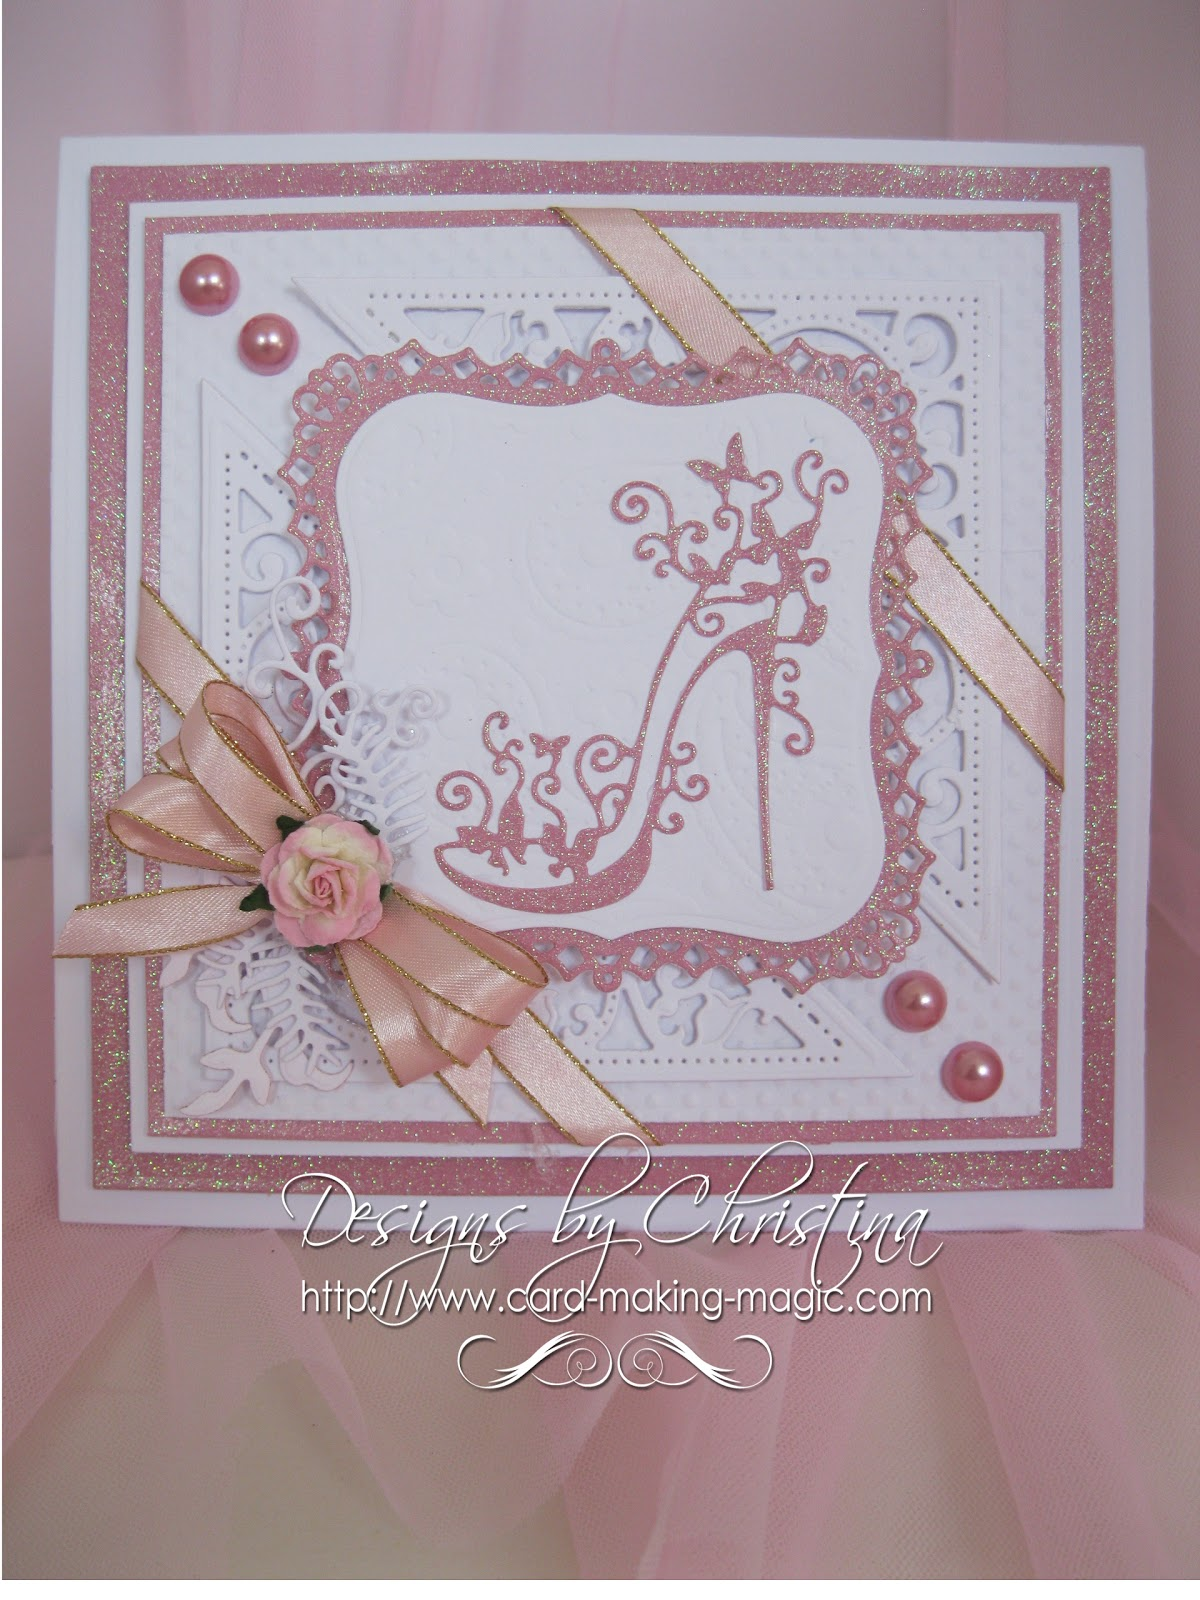 lace card making ideas